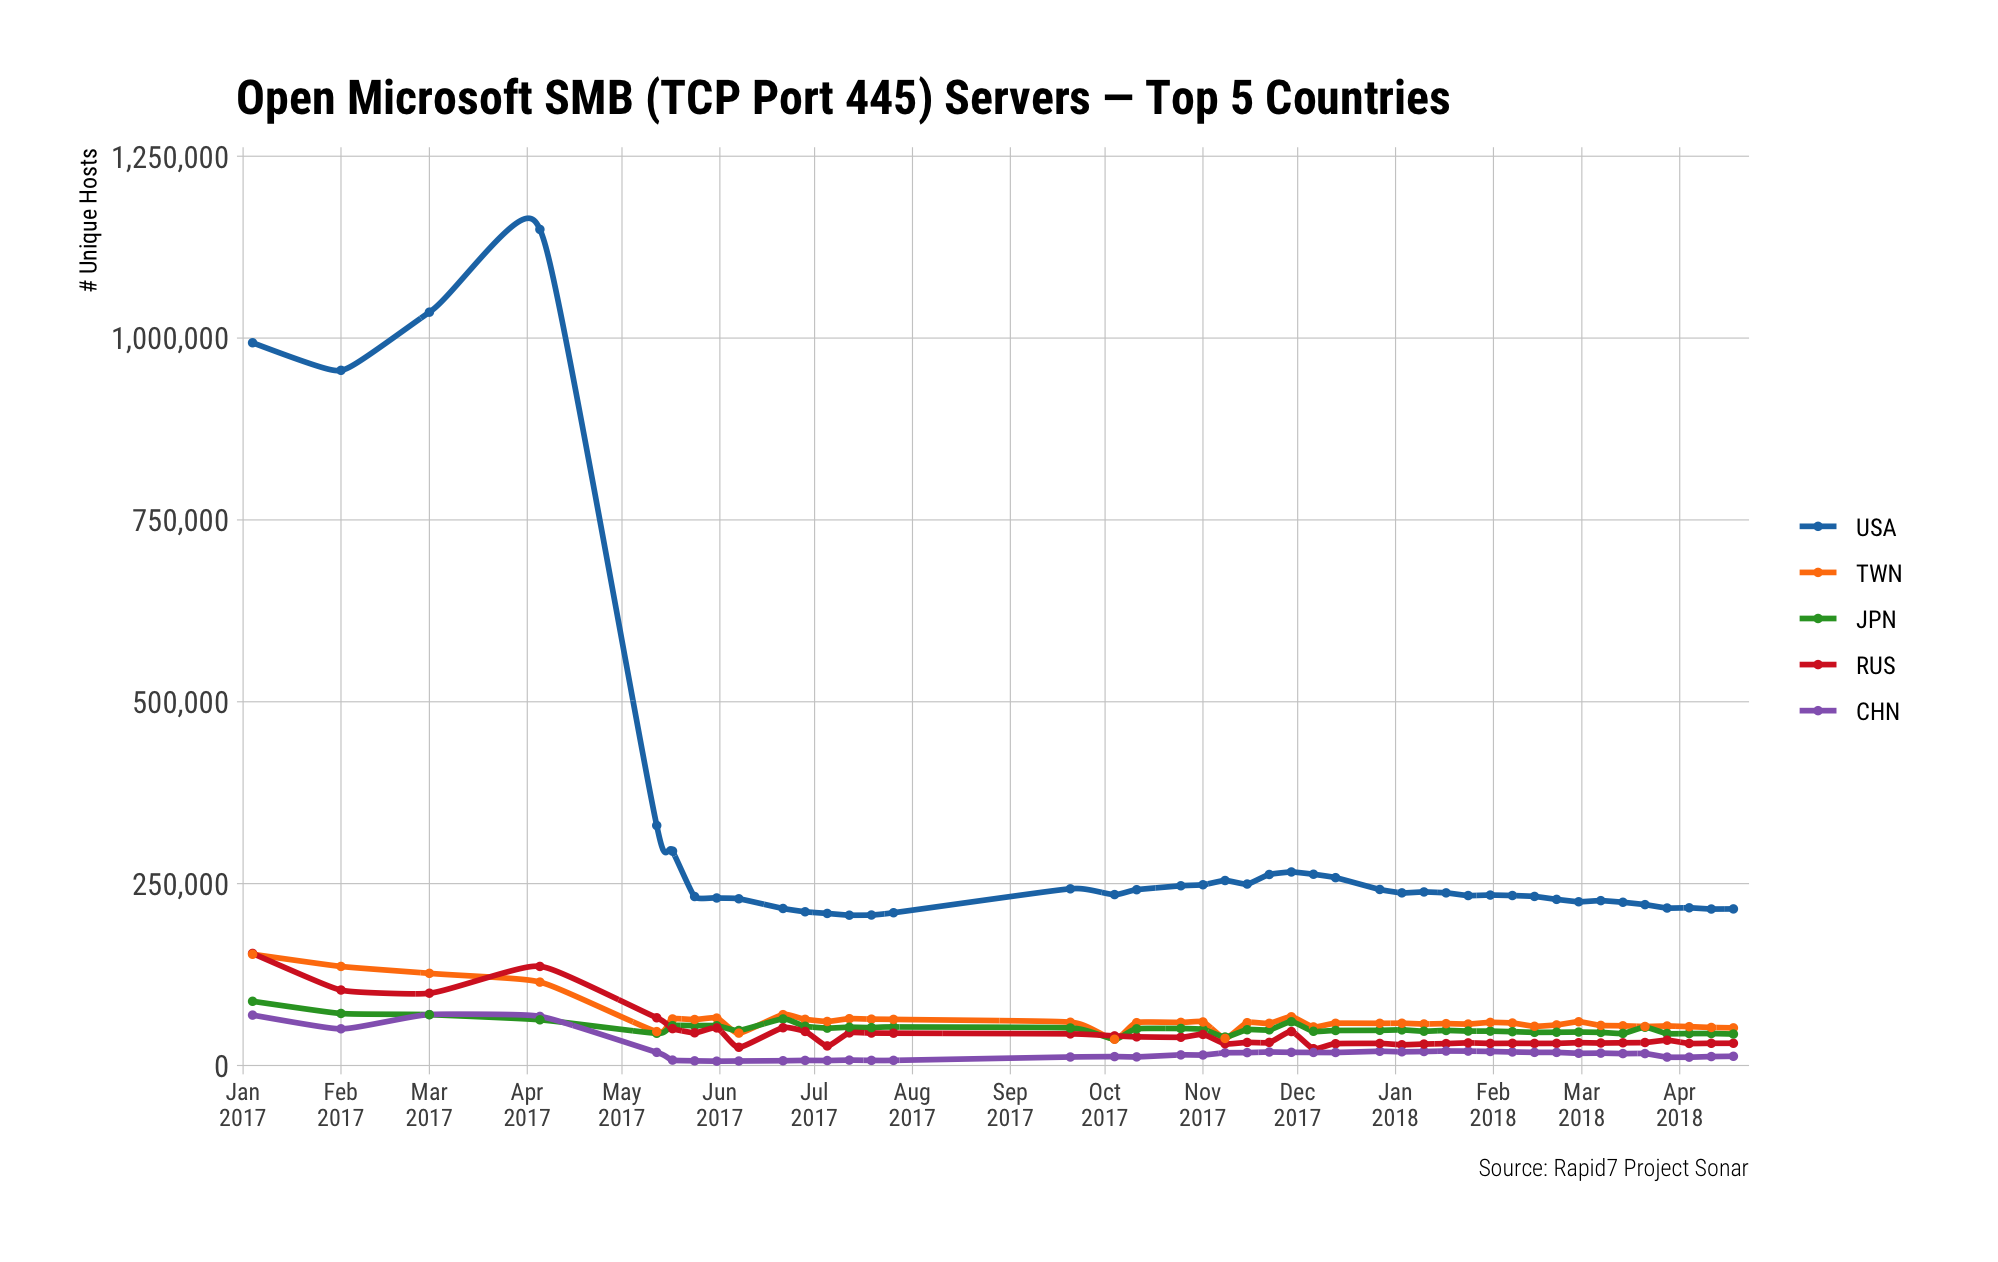 fig2-open-smb-top5